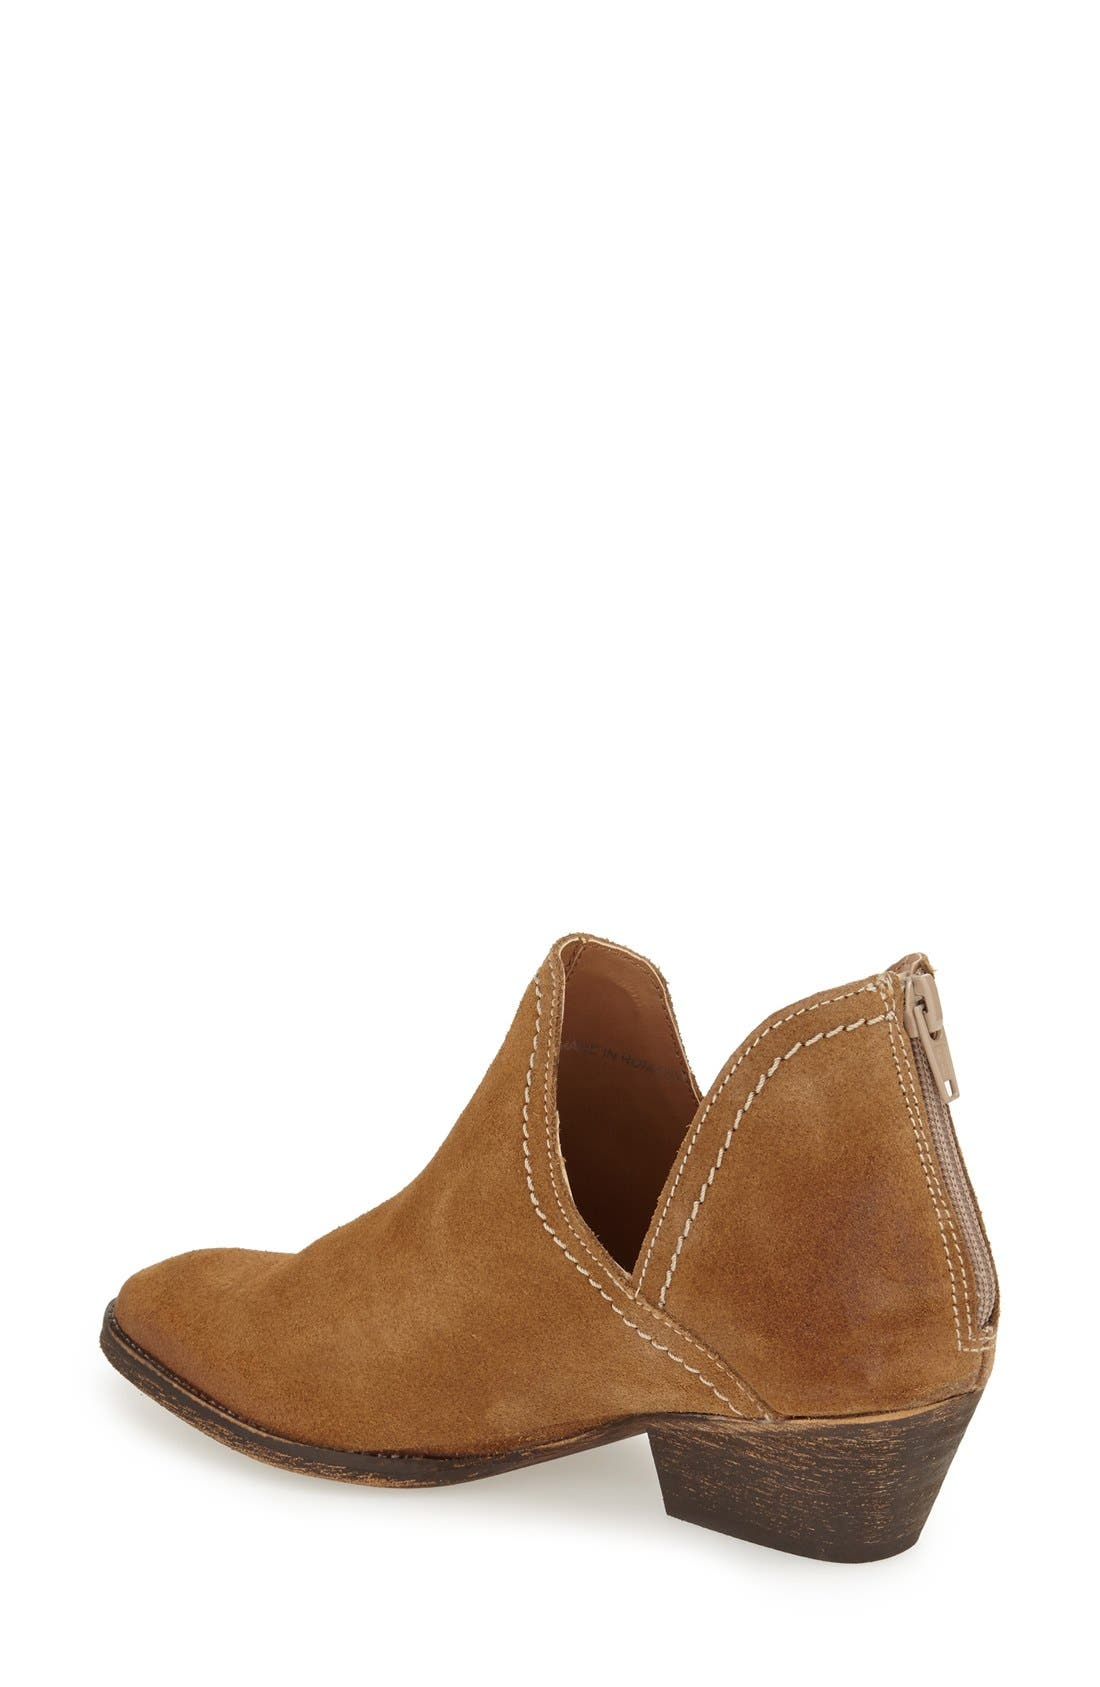 'Bai' Bootie,                             Alternate thumbnail 2, color,                             Tobacco Suede